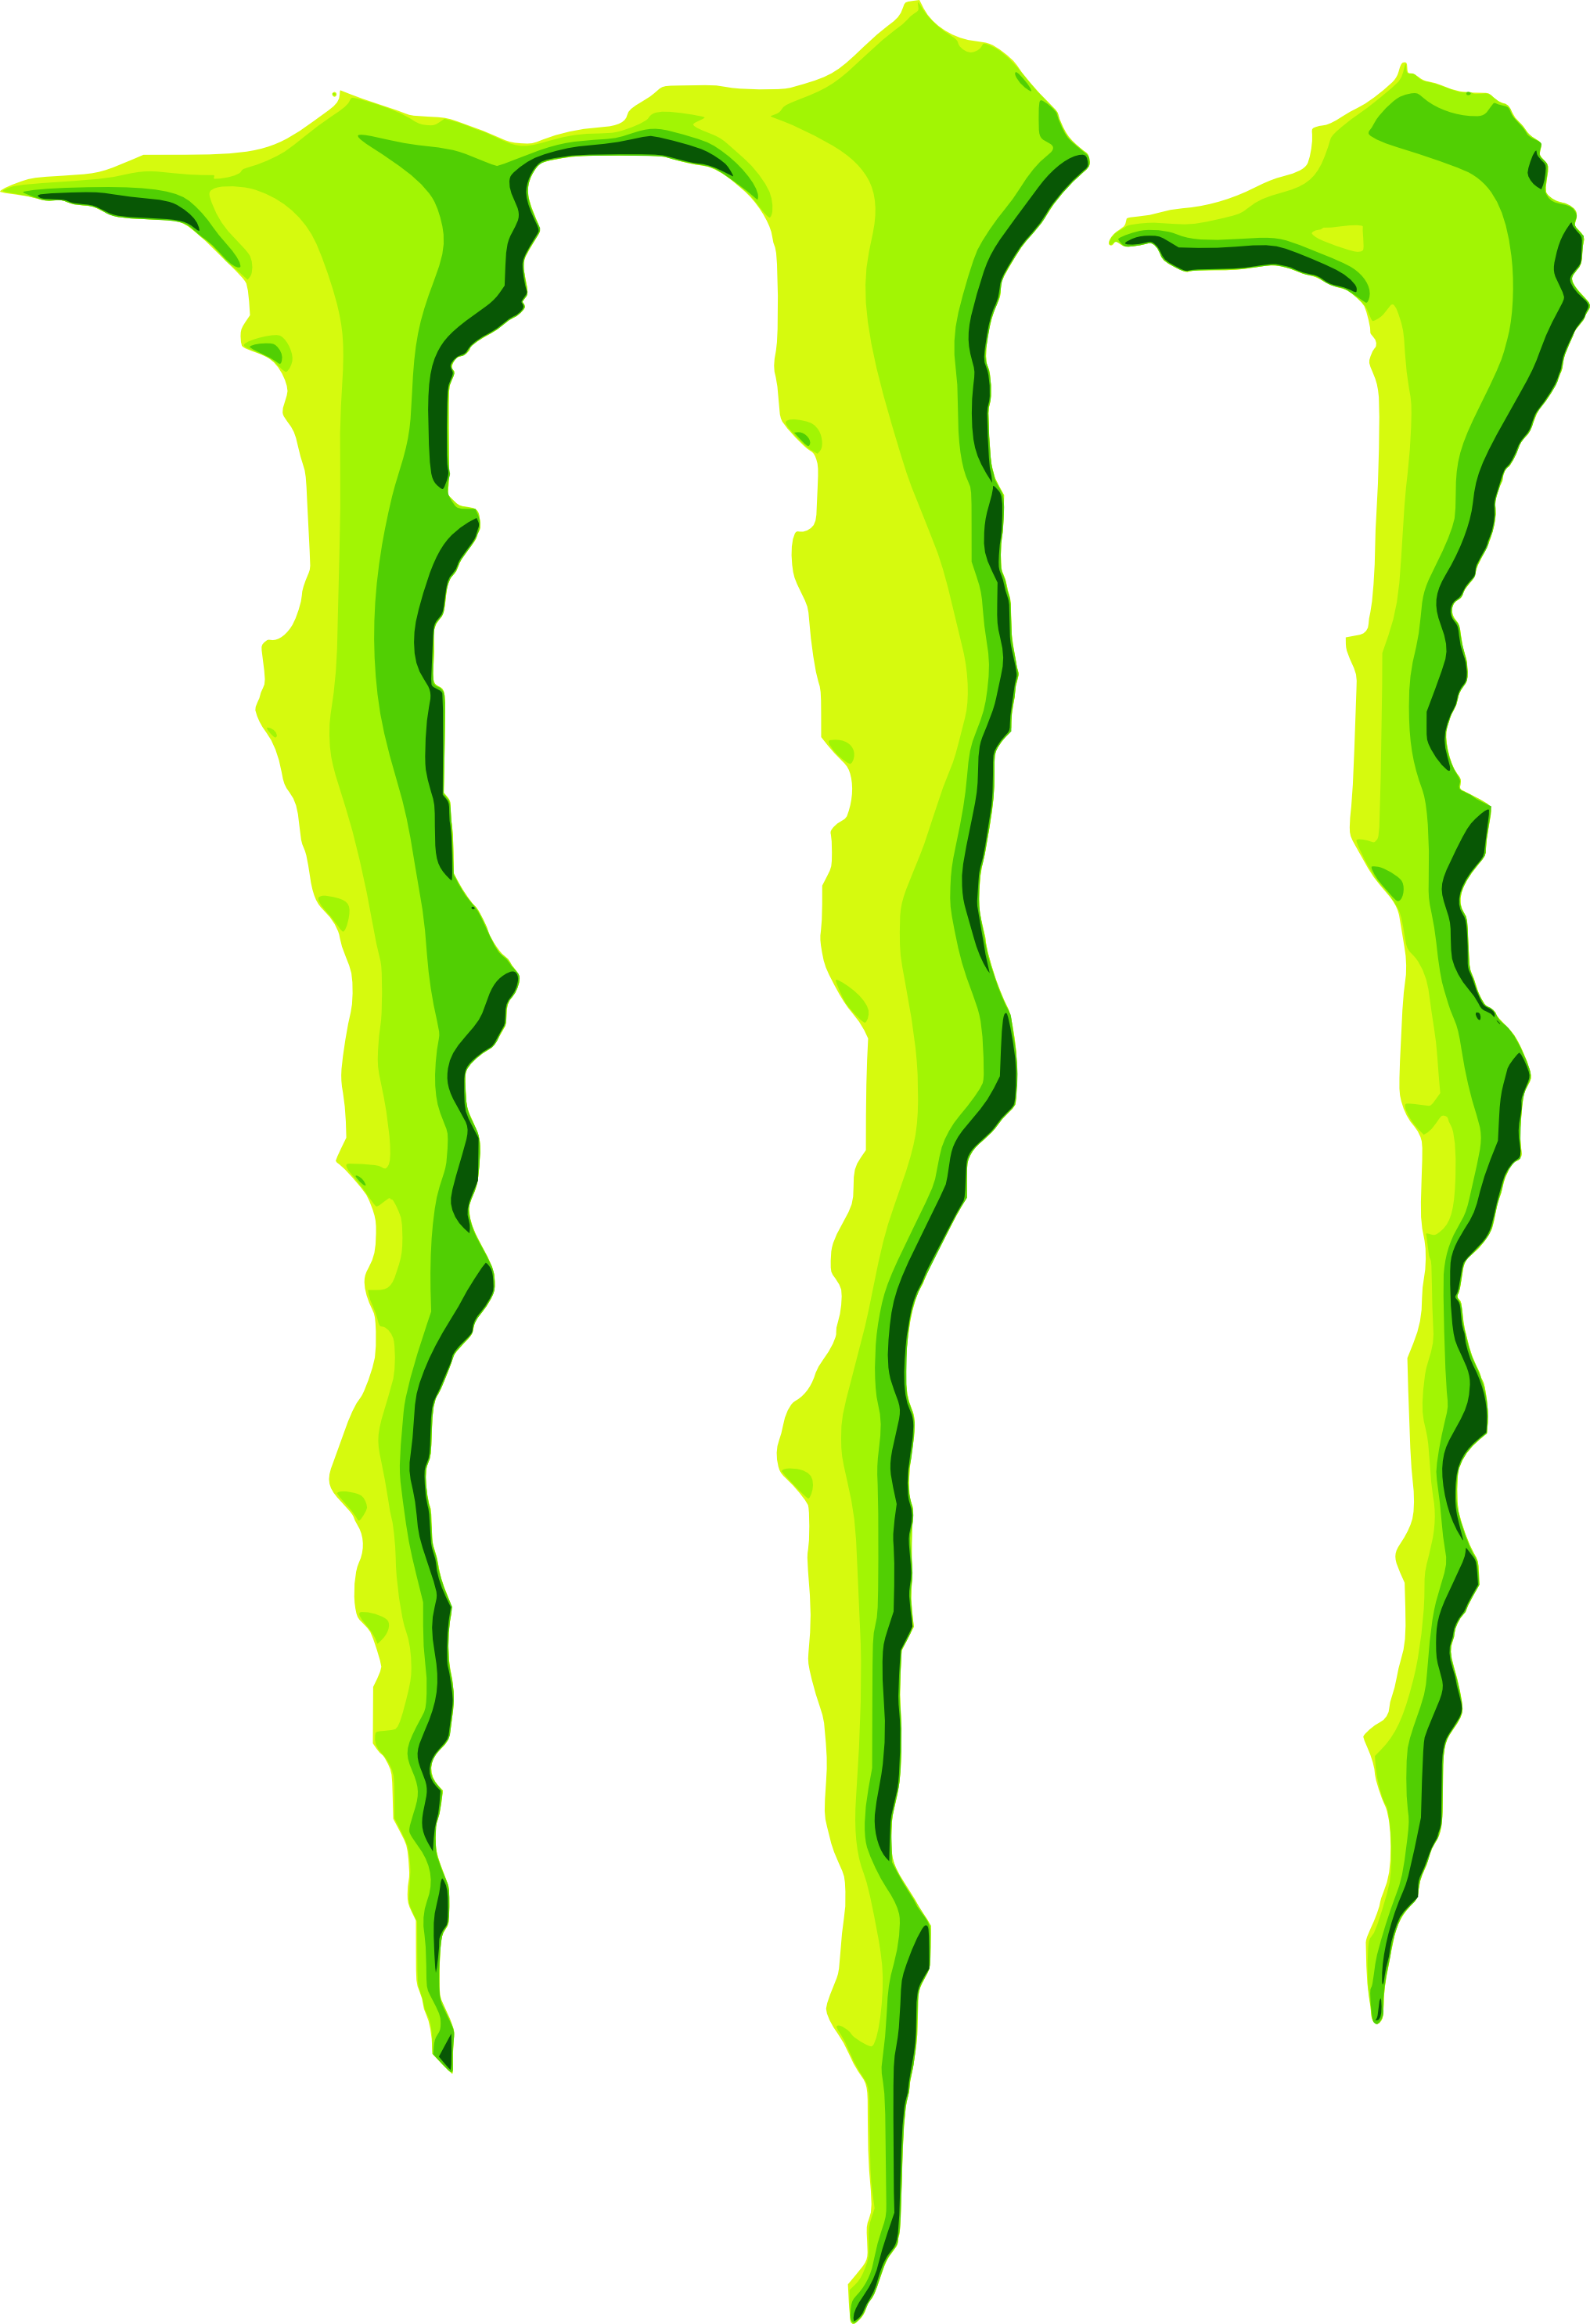 Nut clipart energy. Monster drink decal sticker